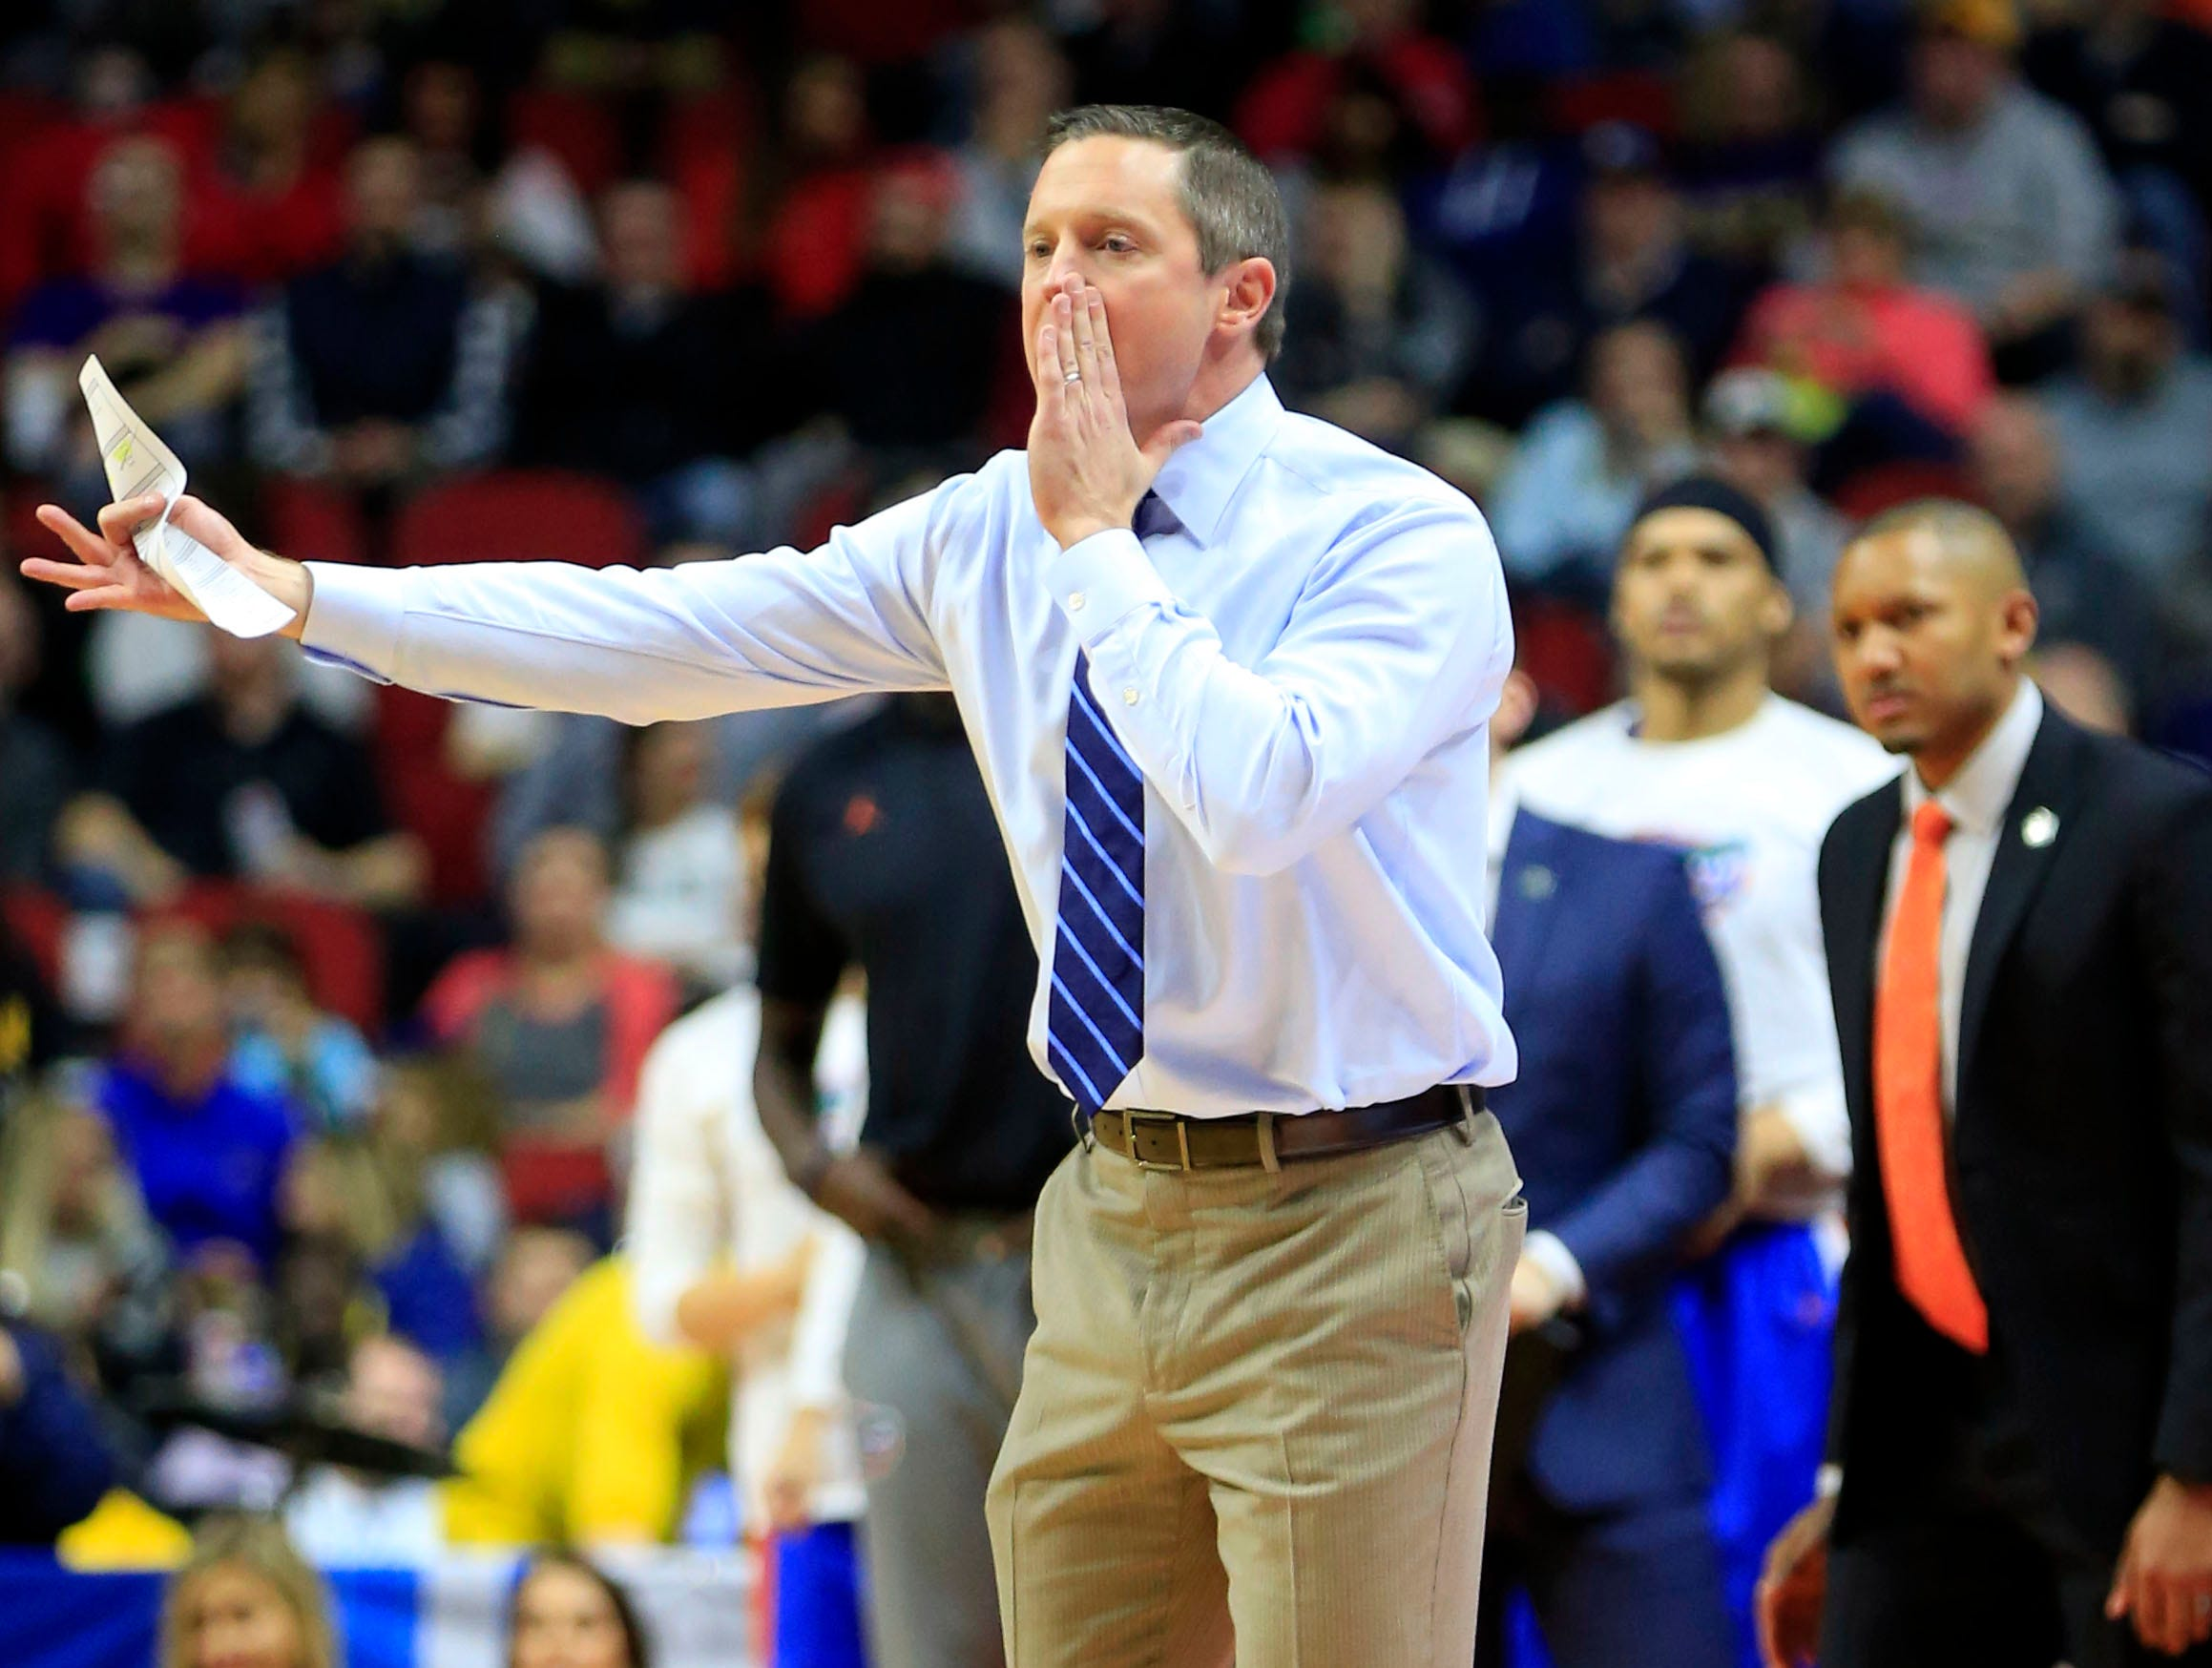 Florida Head Coach Mike White calls a play during their NCAA Division I Men's Basketball Championship First Round game against Nevada on Thursday, March 21, 2019 in Des Moines.